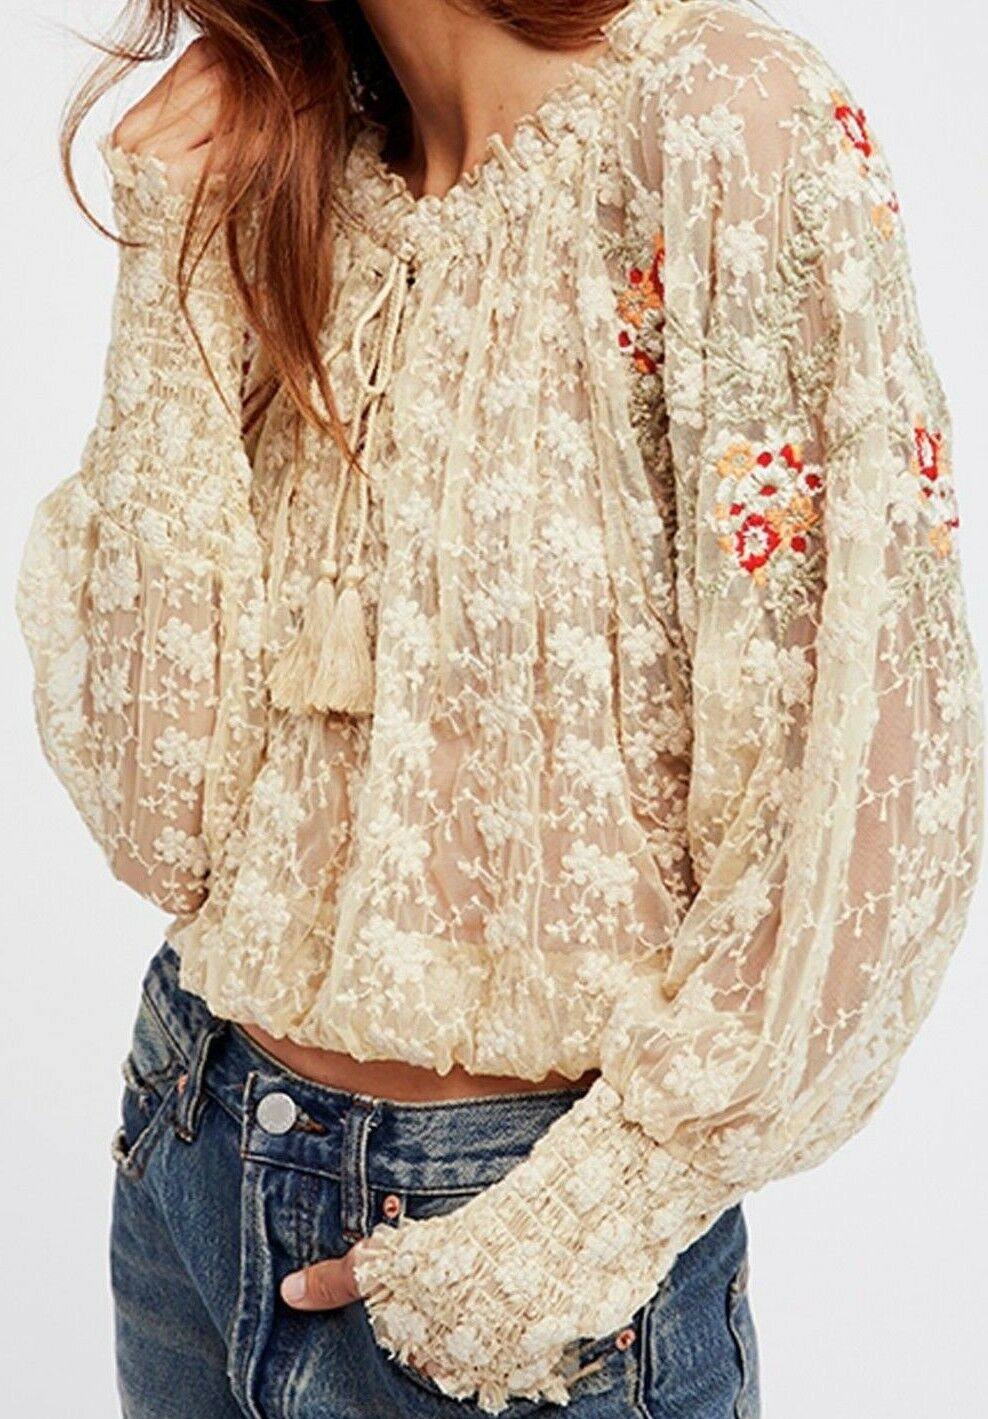 NWT FREE PEOPLE SzS JUBILEE MESH EMBROIDErot LONG SLEEVE BLOUSE IVORY